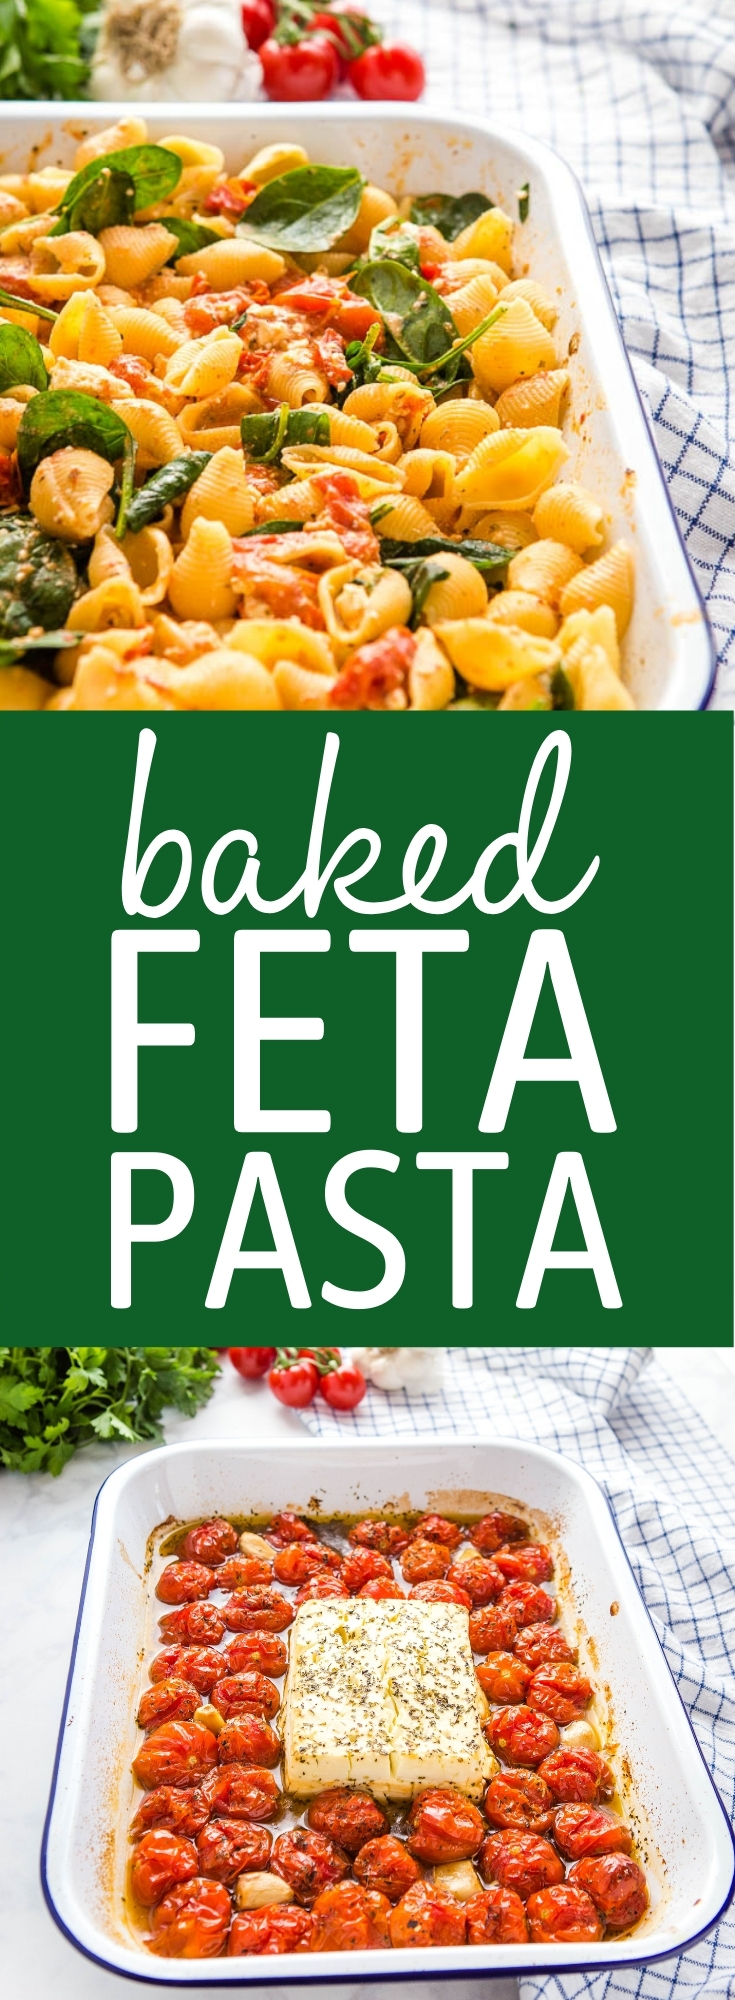 This Easy Baked Feta Pasta is a simple vegetarian meal on the table in 30 minutes. Made with classic feta cheese, cherry tomatoes, garlic, and spinach. Recipe from thebusybaker.ca! #bakedfetapasta #tiktokpasta #viralfetapasta #vegetarian #easymeal #familymeal #greek #italian via @busybakerblog